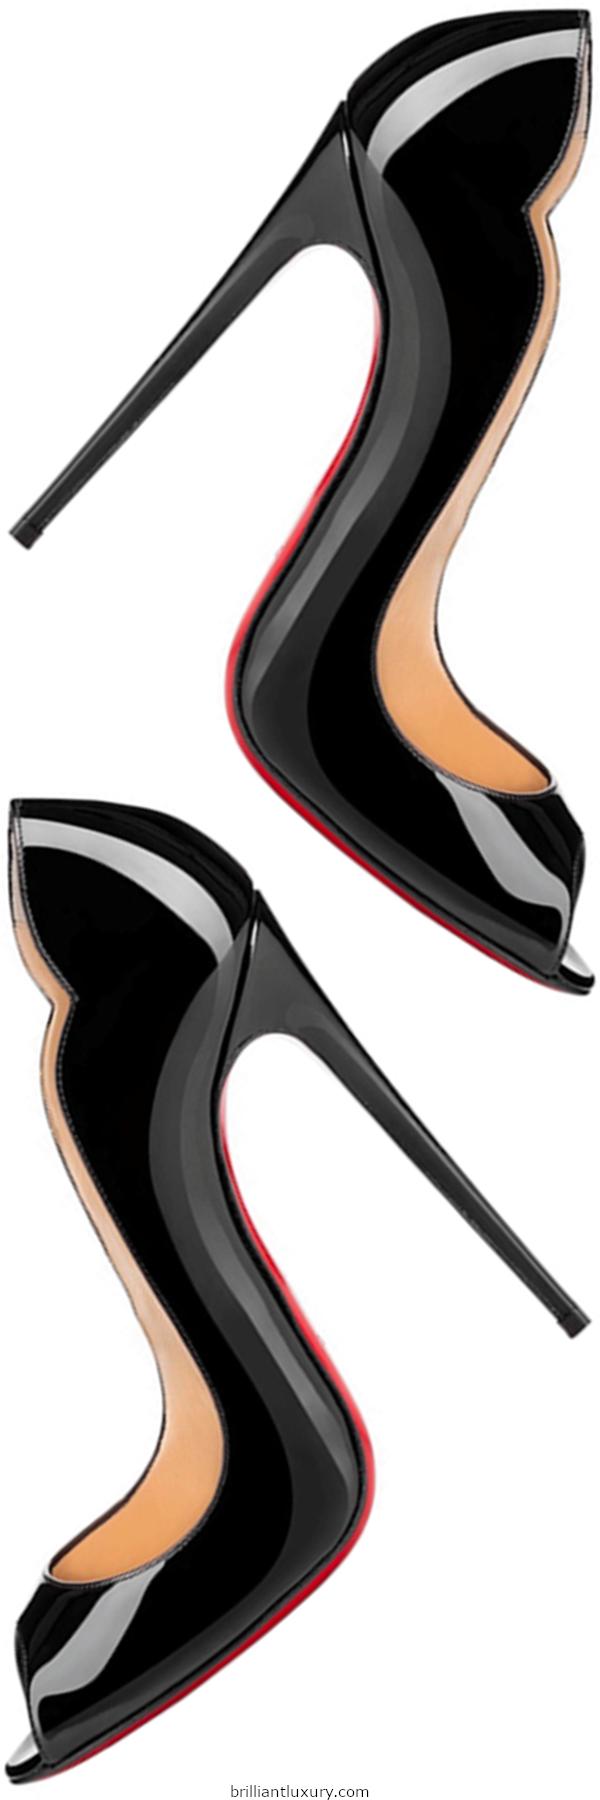 Brilliant Luxury│Christian Louboutin Hot Wave black patent leather peeptoe pumps